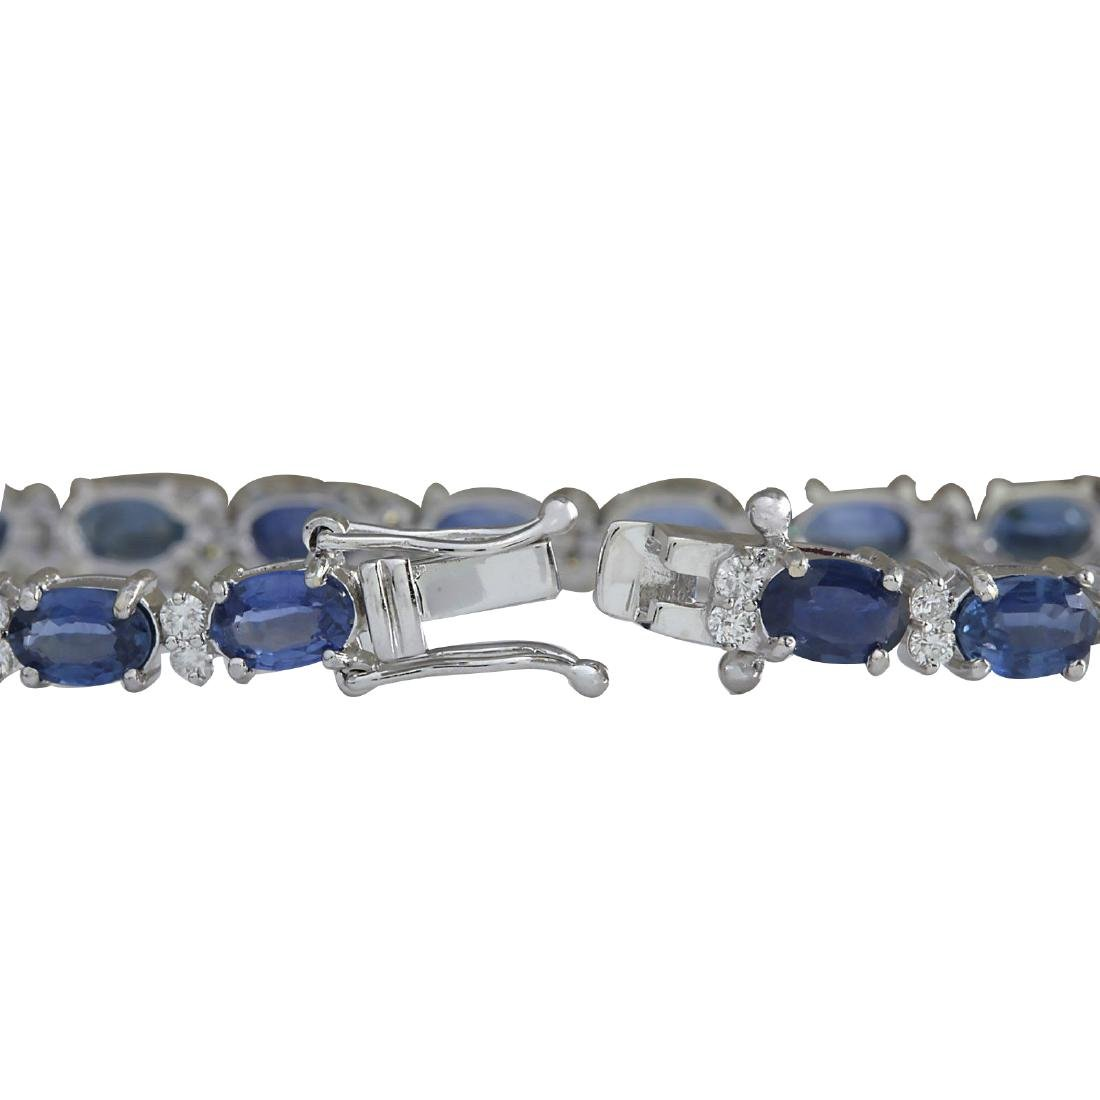 13.49CTW Natural Sapphire And Diamond Bracelet In 18K - 2